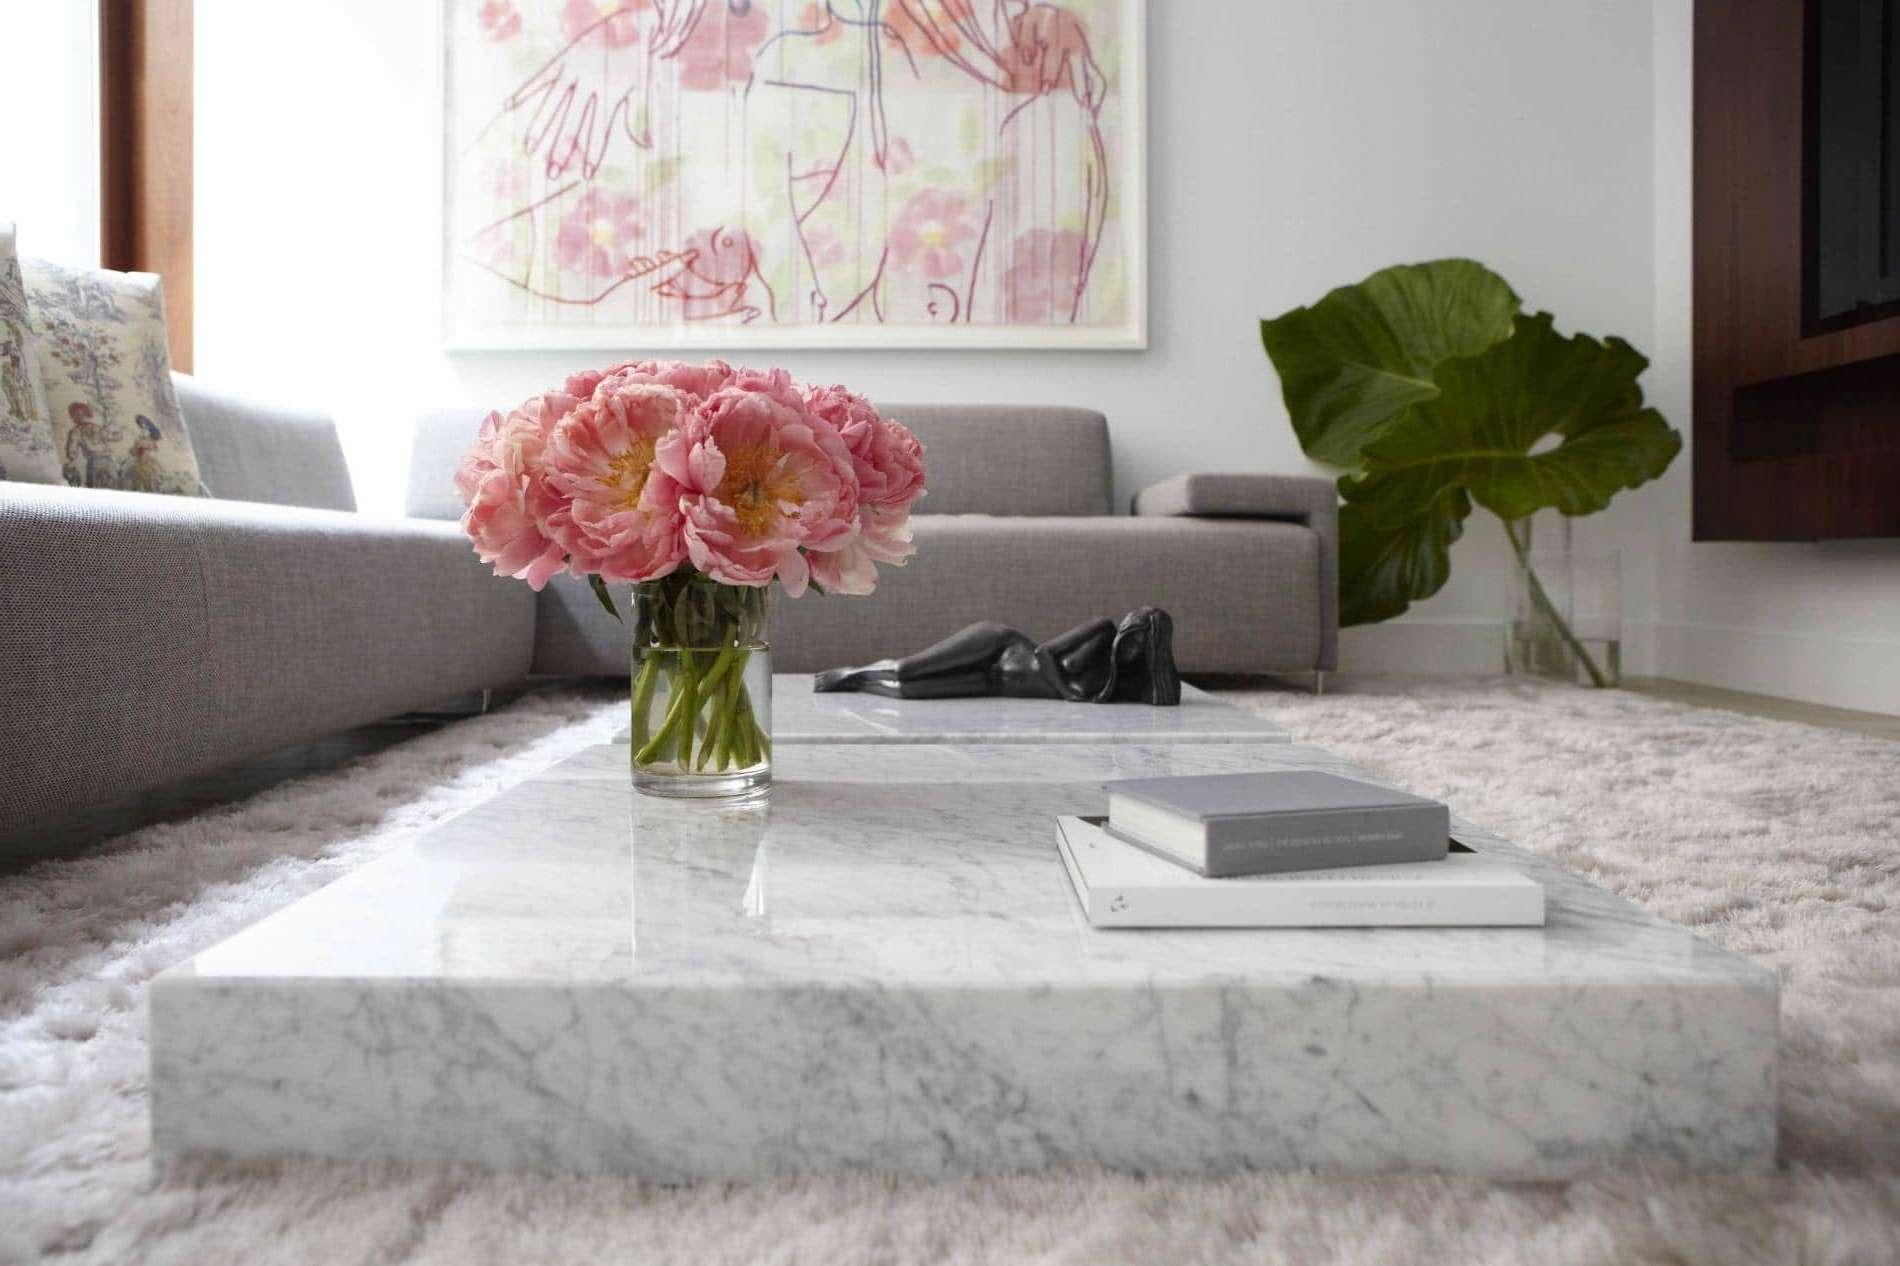 Marble Coffee Table Design, Style Ideas And Tips – Sefa Stone Inside Most Up To Date Marble Coffee Tables (View 5 of 20)